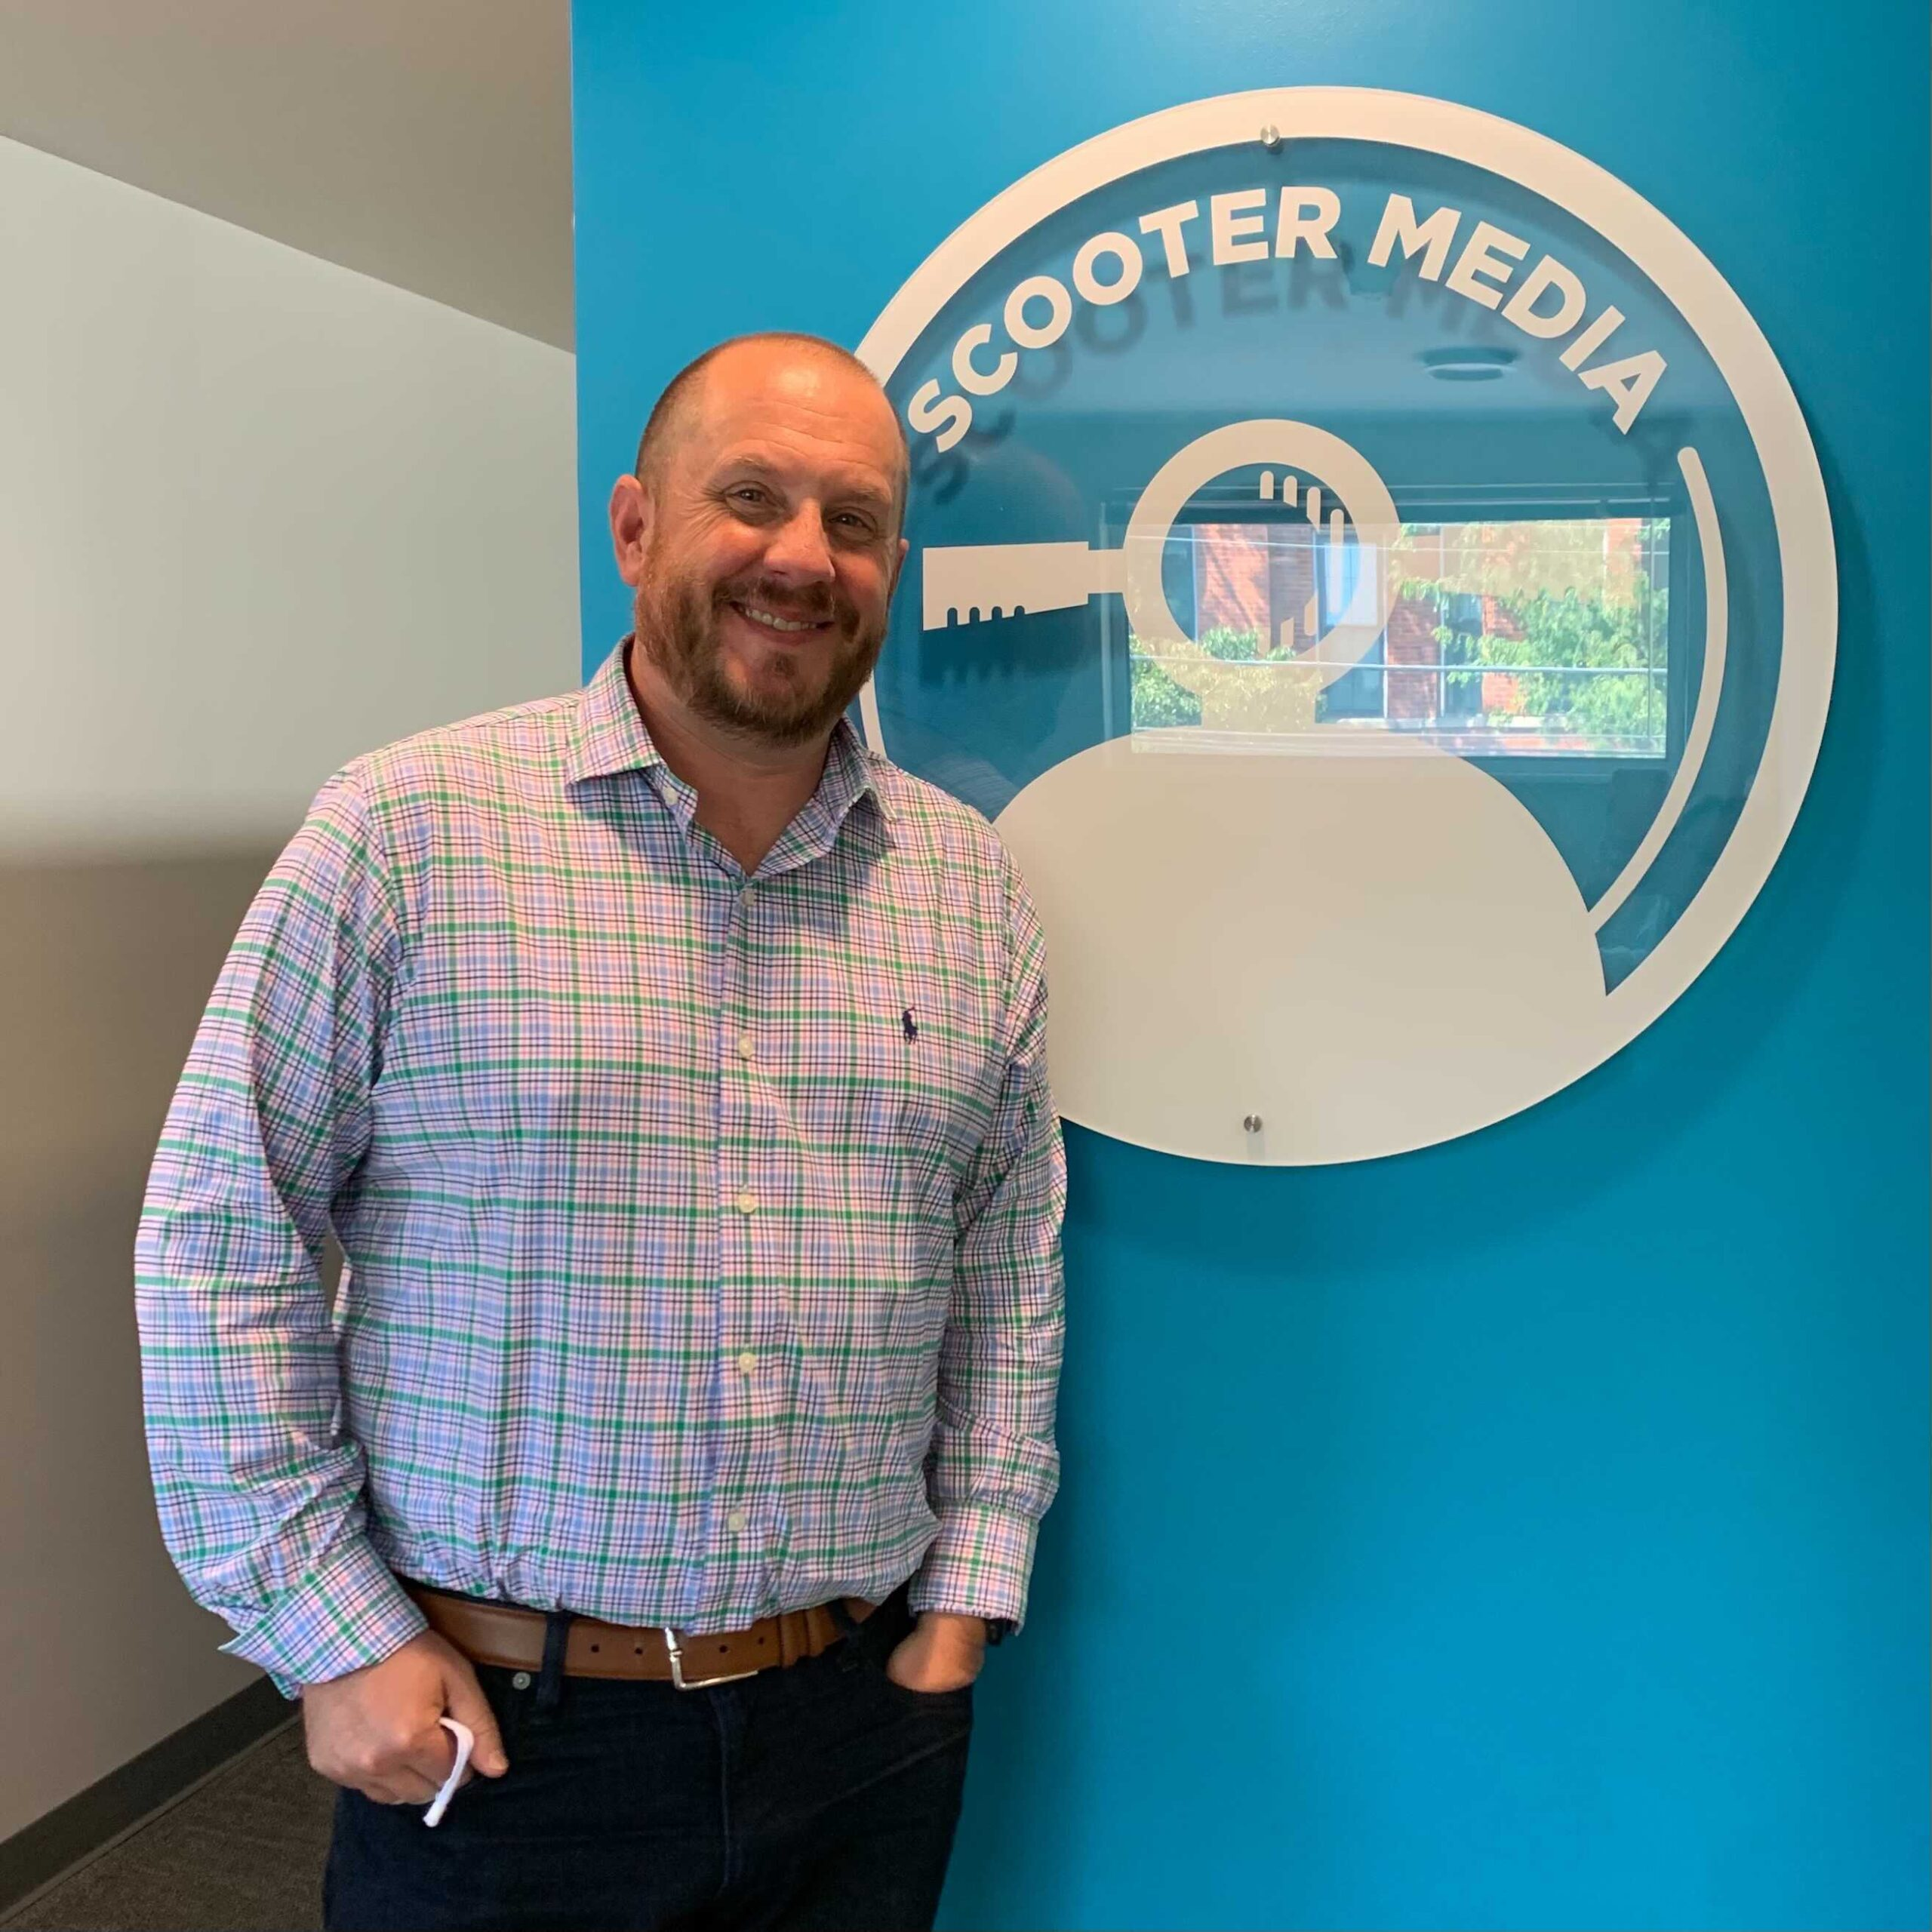 Photo of Brian Mains posing with the Scooter Media logo